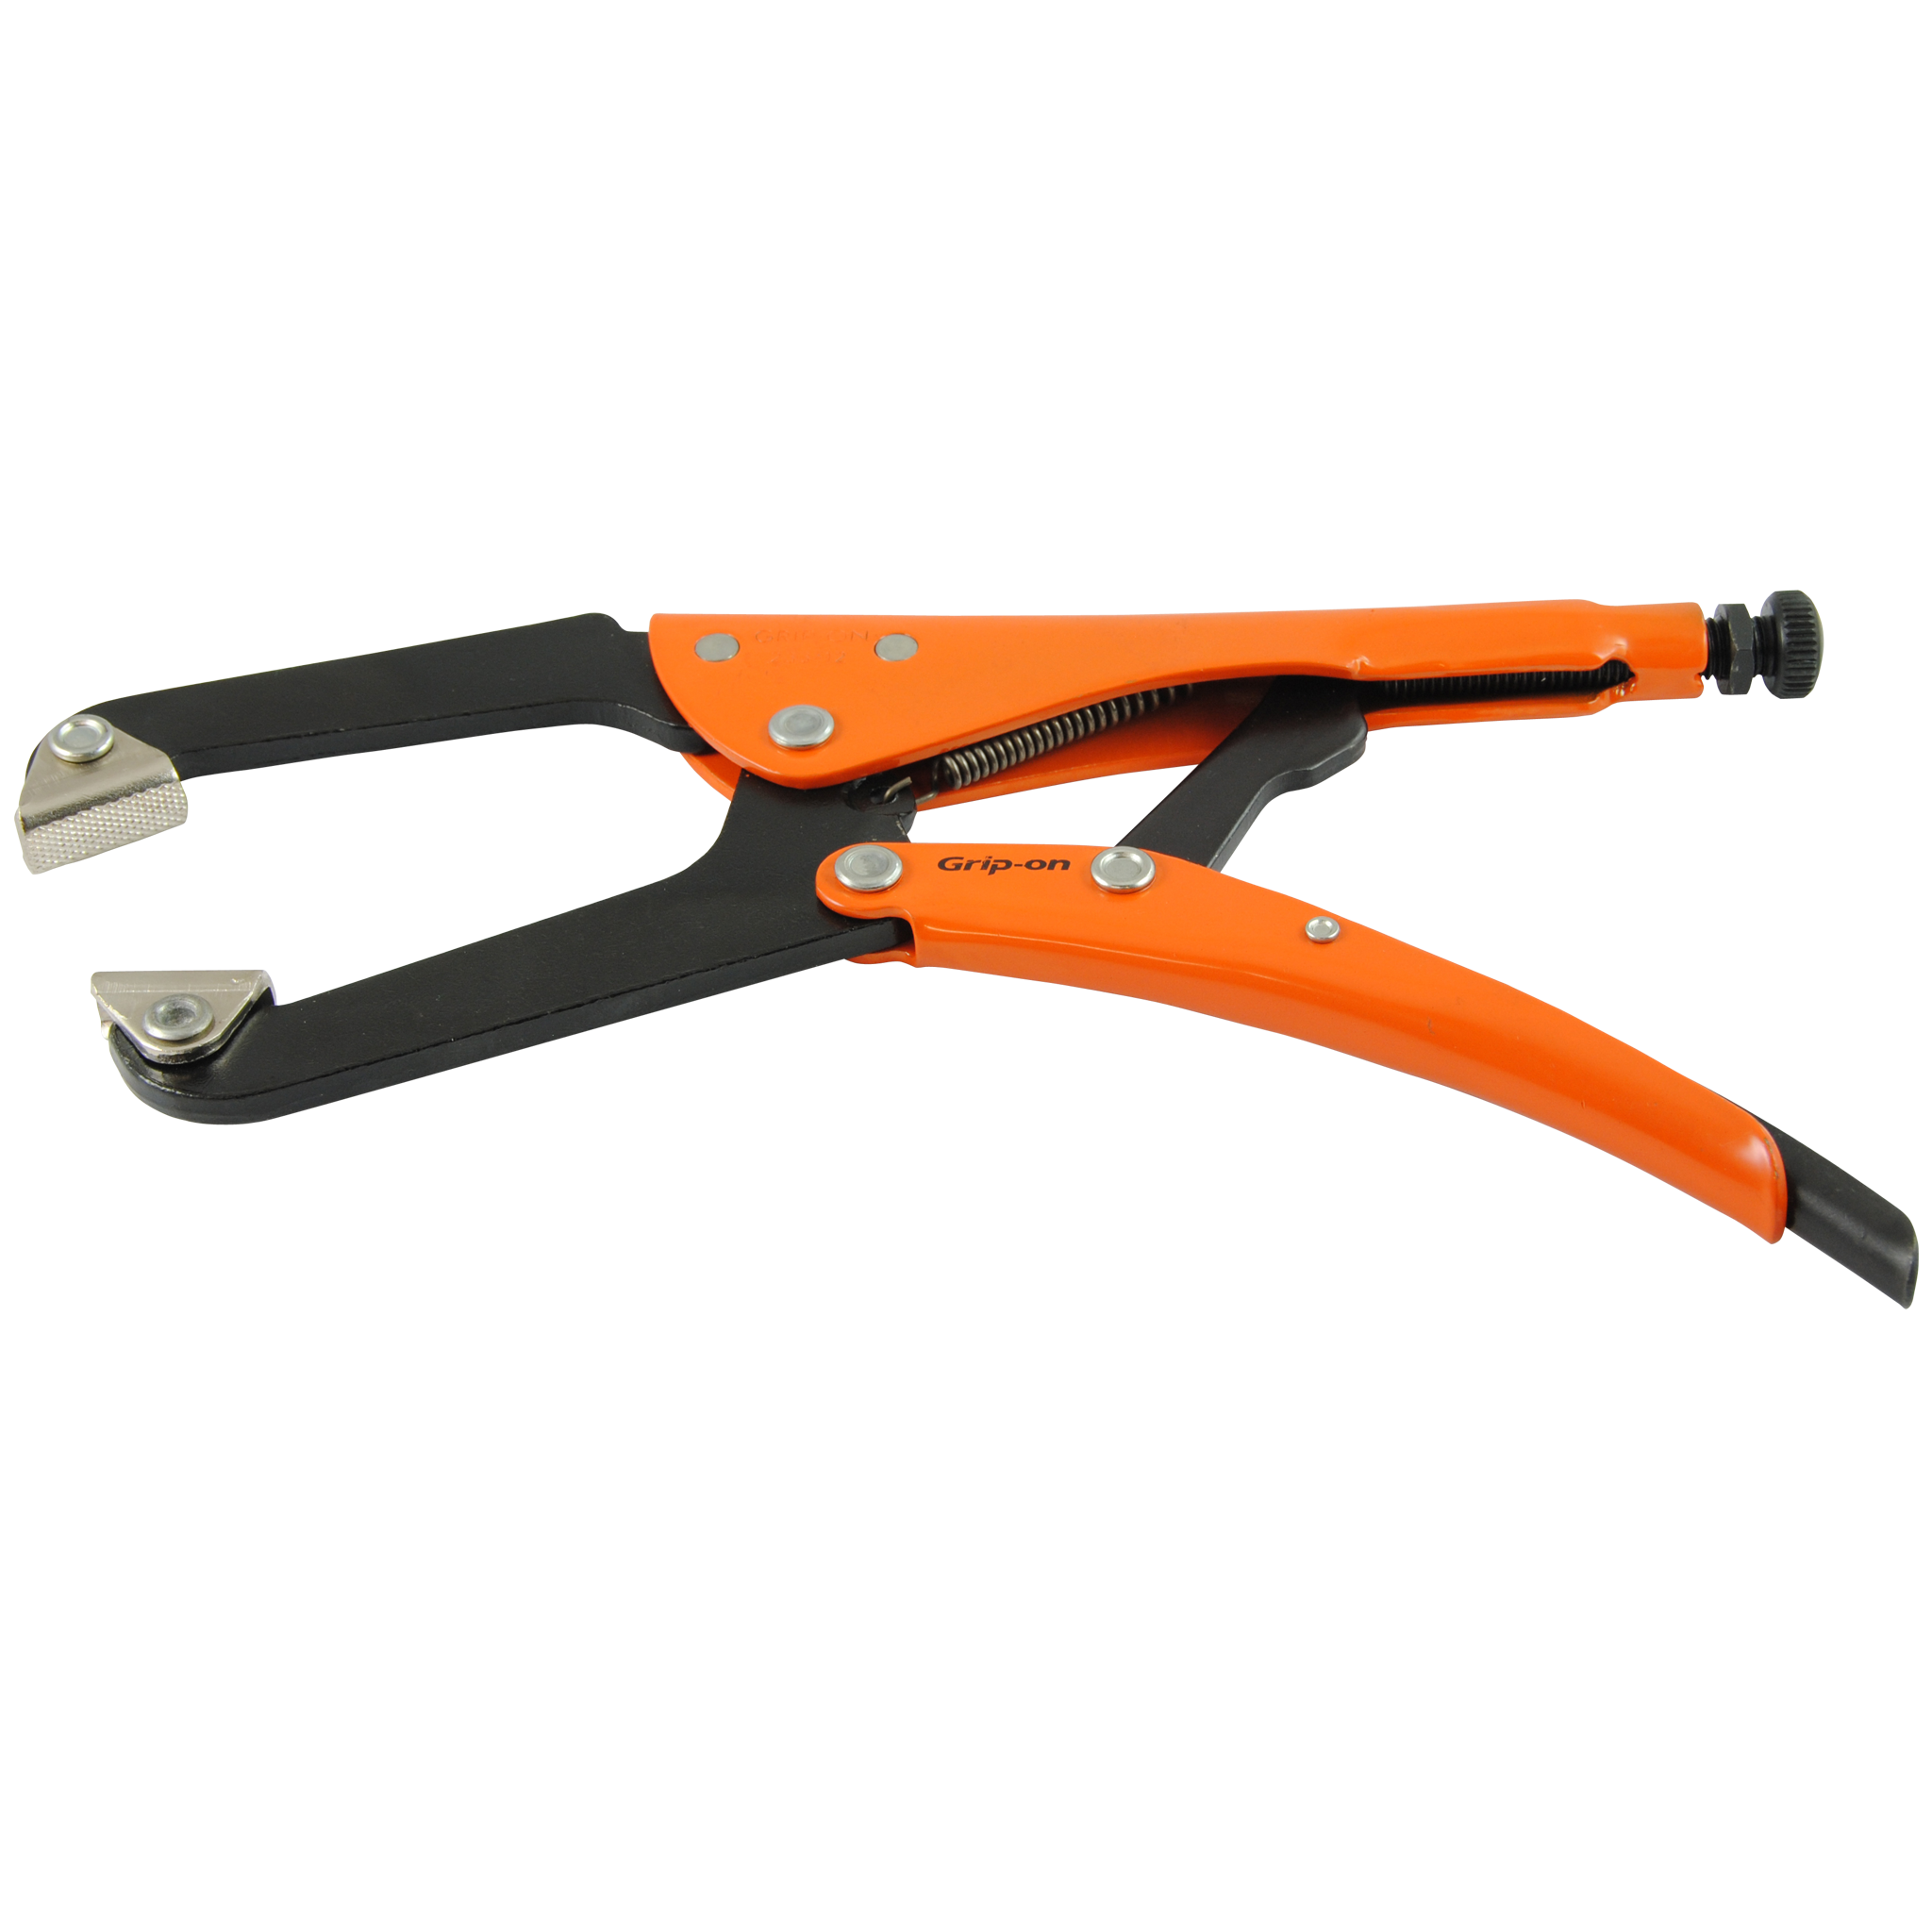 Grip-on Locking C-Clamp with Self Leveling Jaws